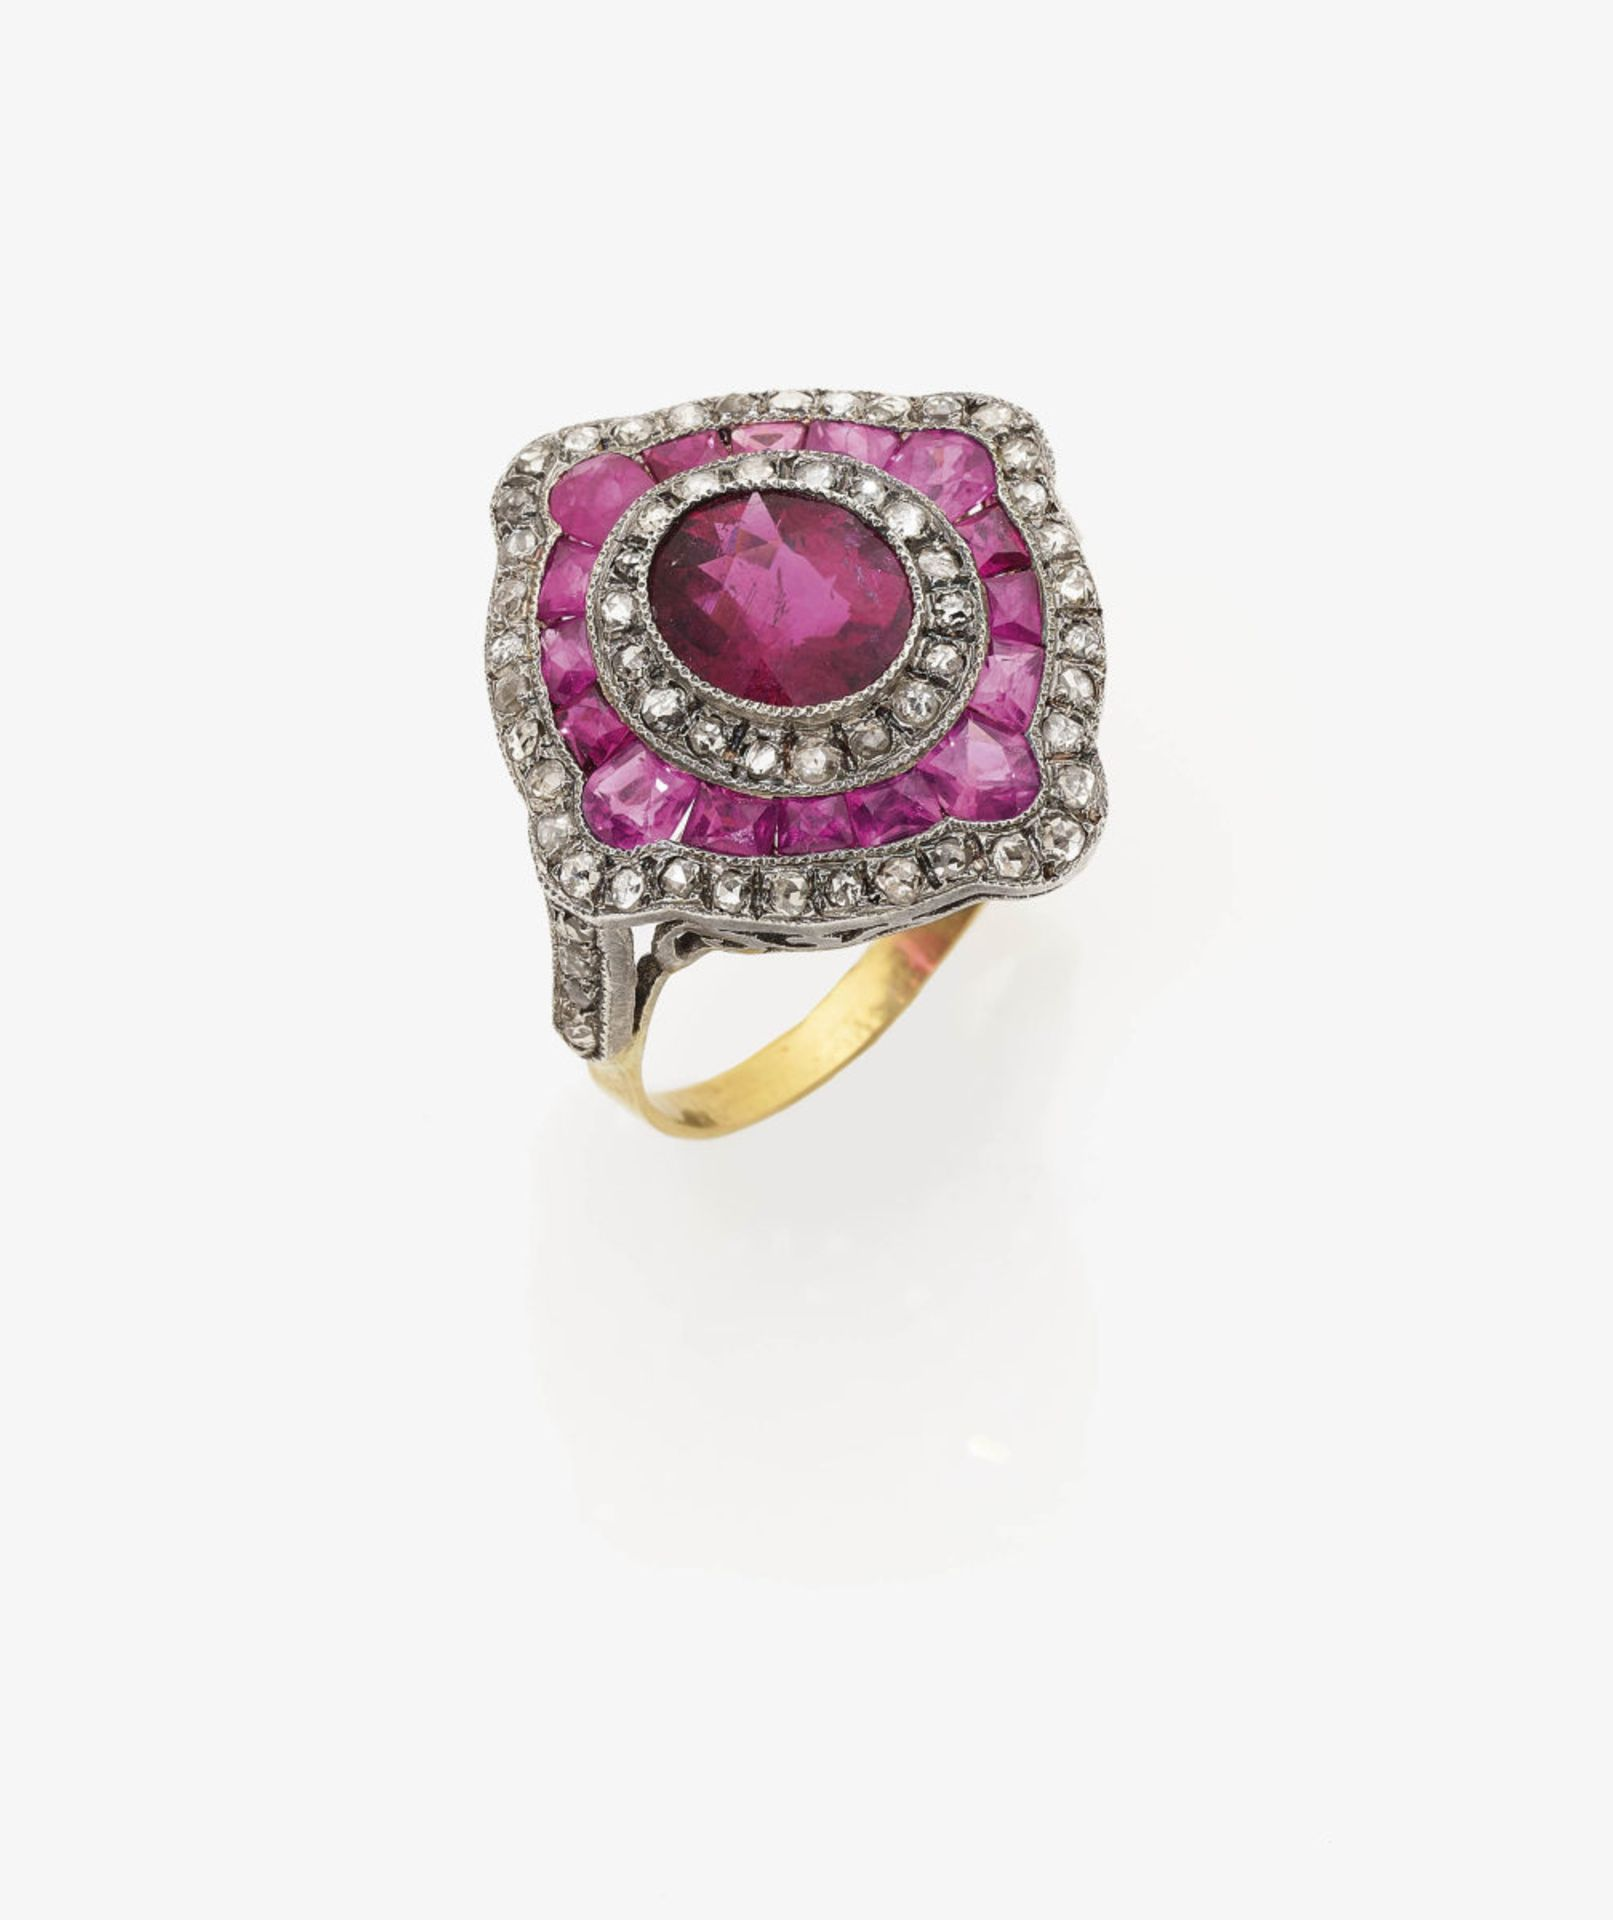 Los 1041 - A Rubellite, Ruby and Diamond Cocktail Ring